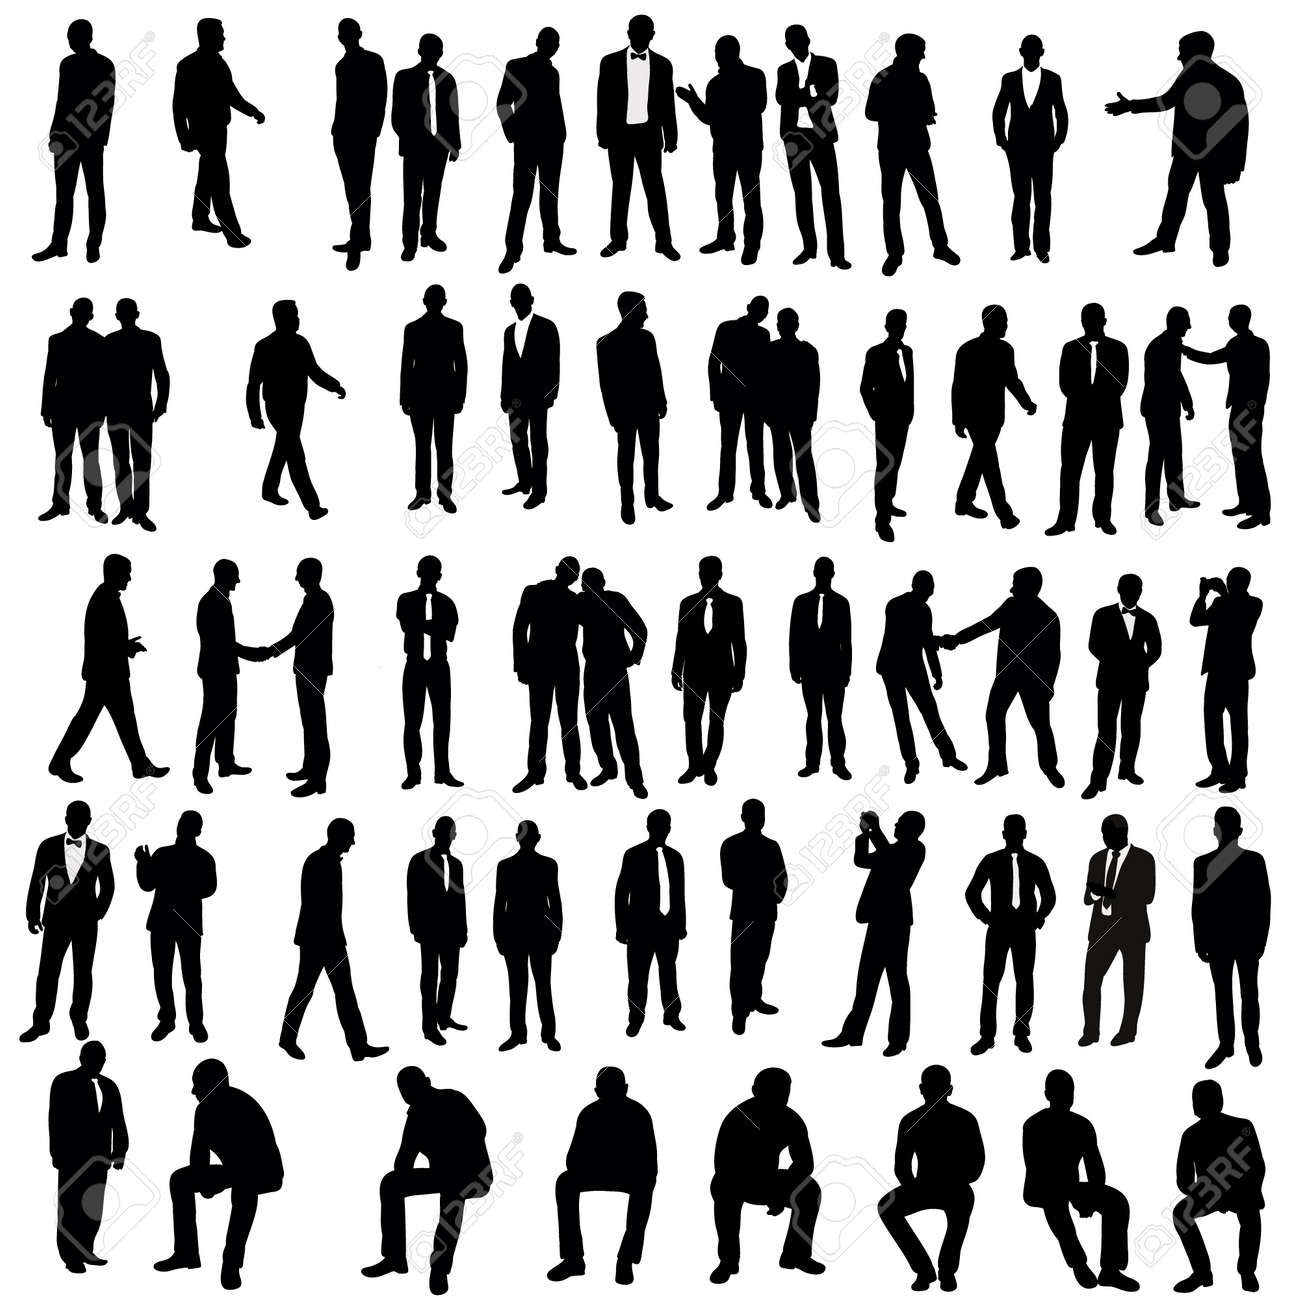 Vector, isolated, silhouette of man, go stand, set - 154021168